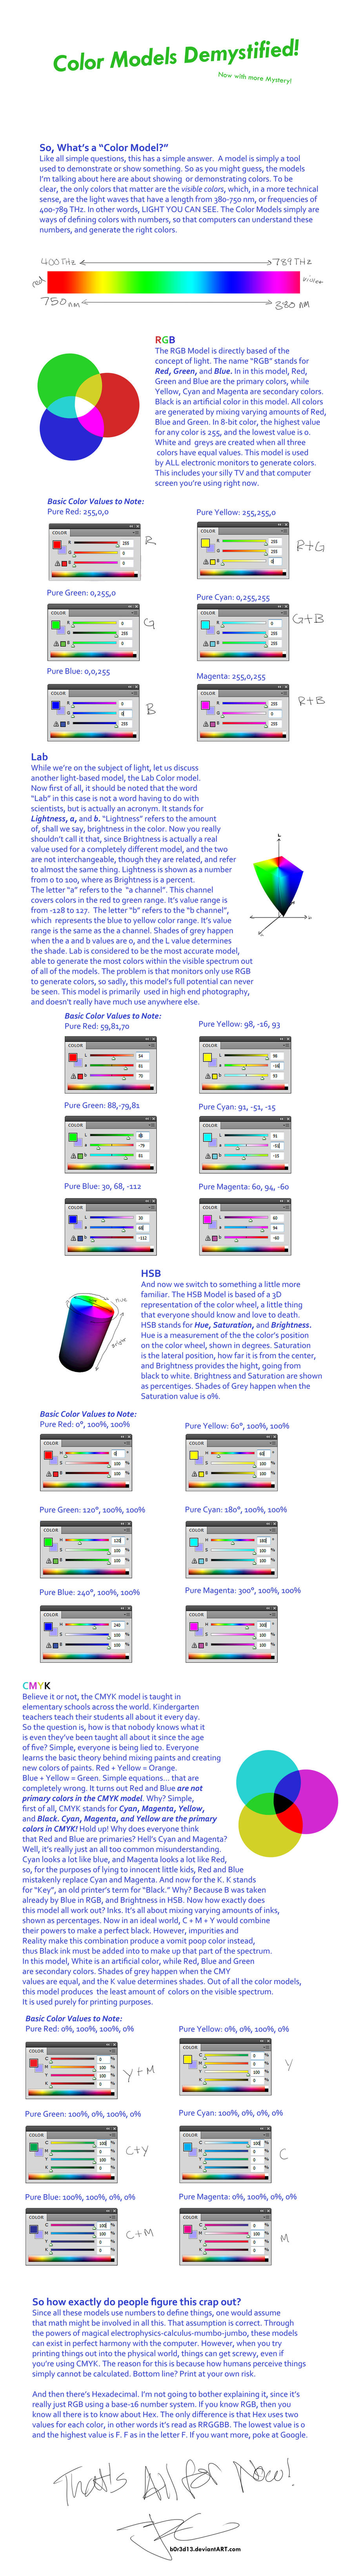 Color Models Demystified by JRCnrd